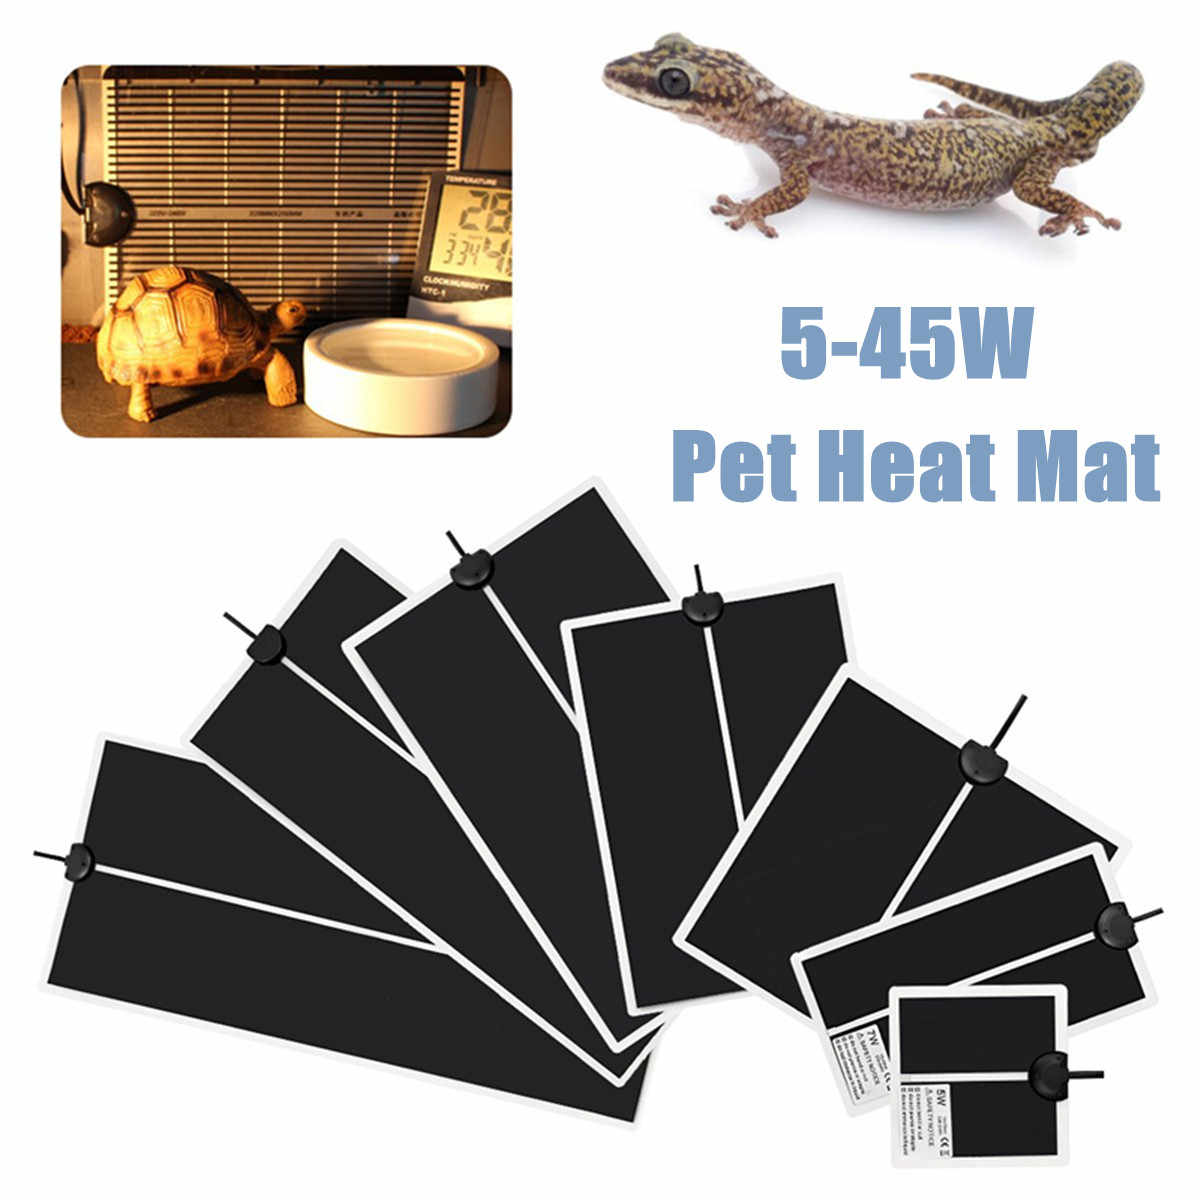 Pet Reptiles Heat Mat Terrarium Climbing Heating Warm Pads 5-45W Adjustable Temperature Controller Mats Reptiles Accessories